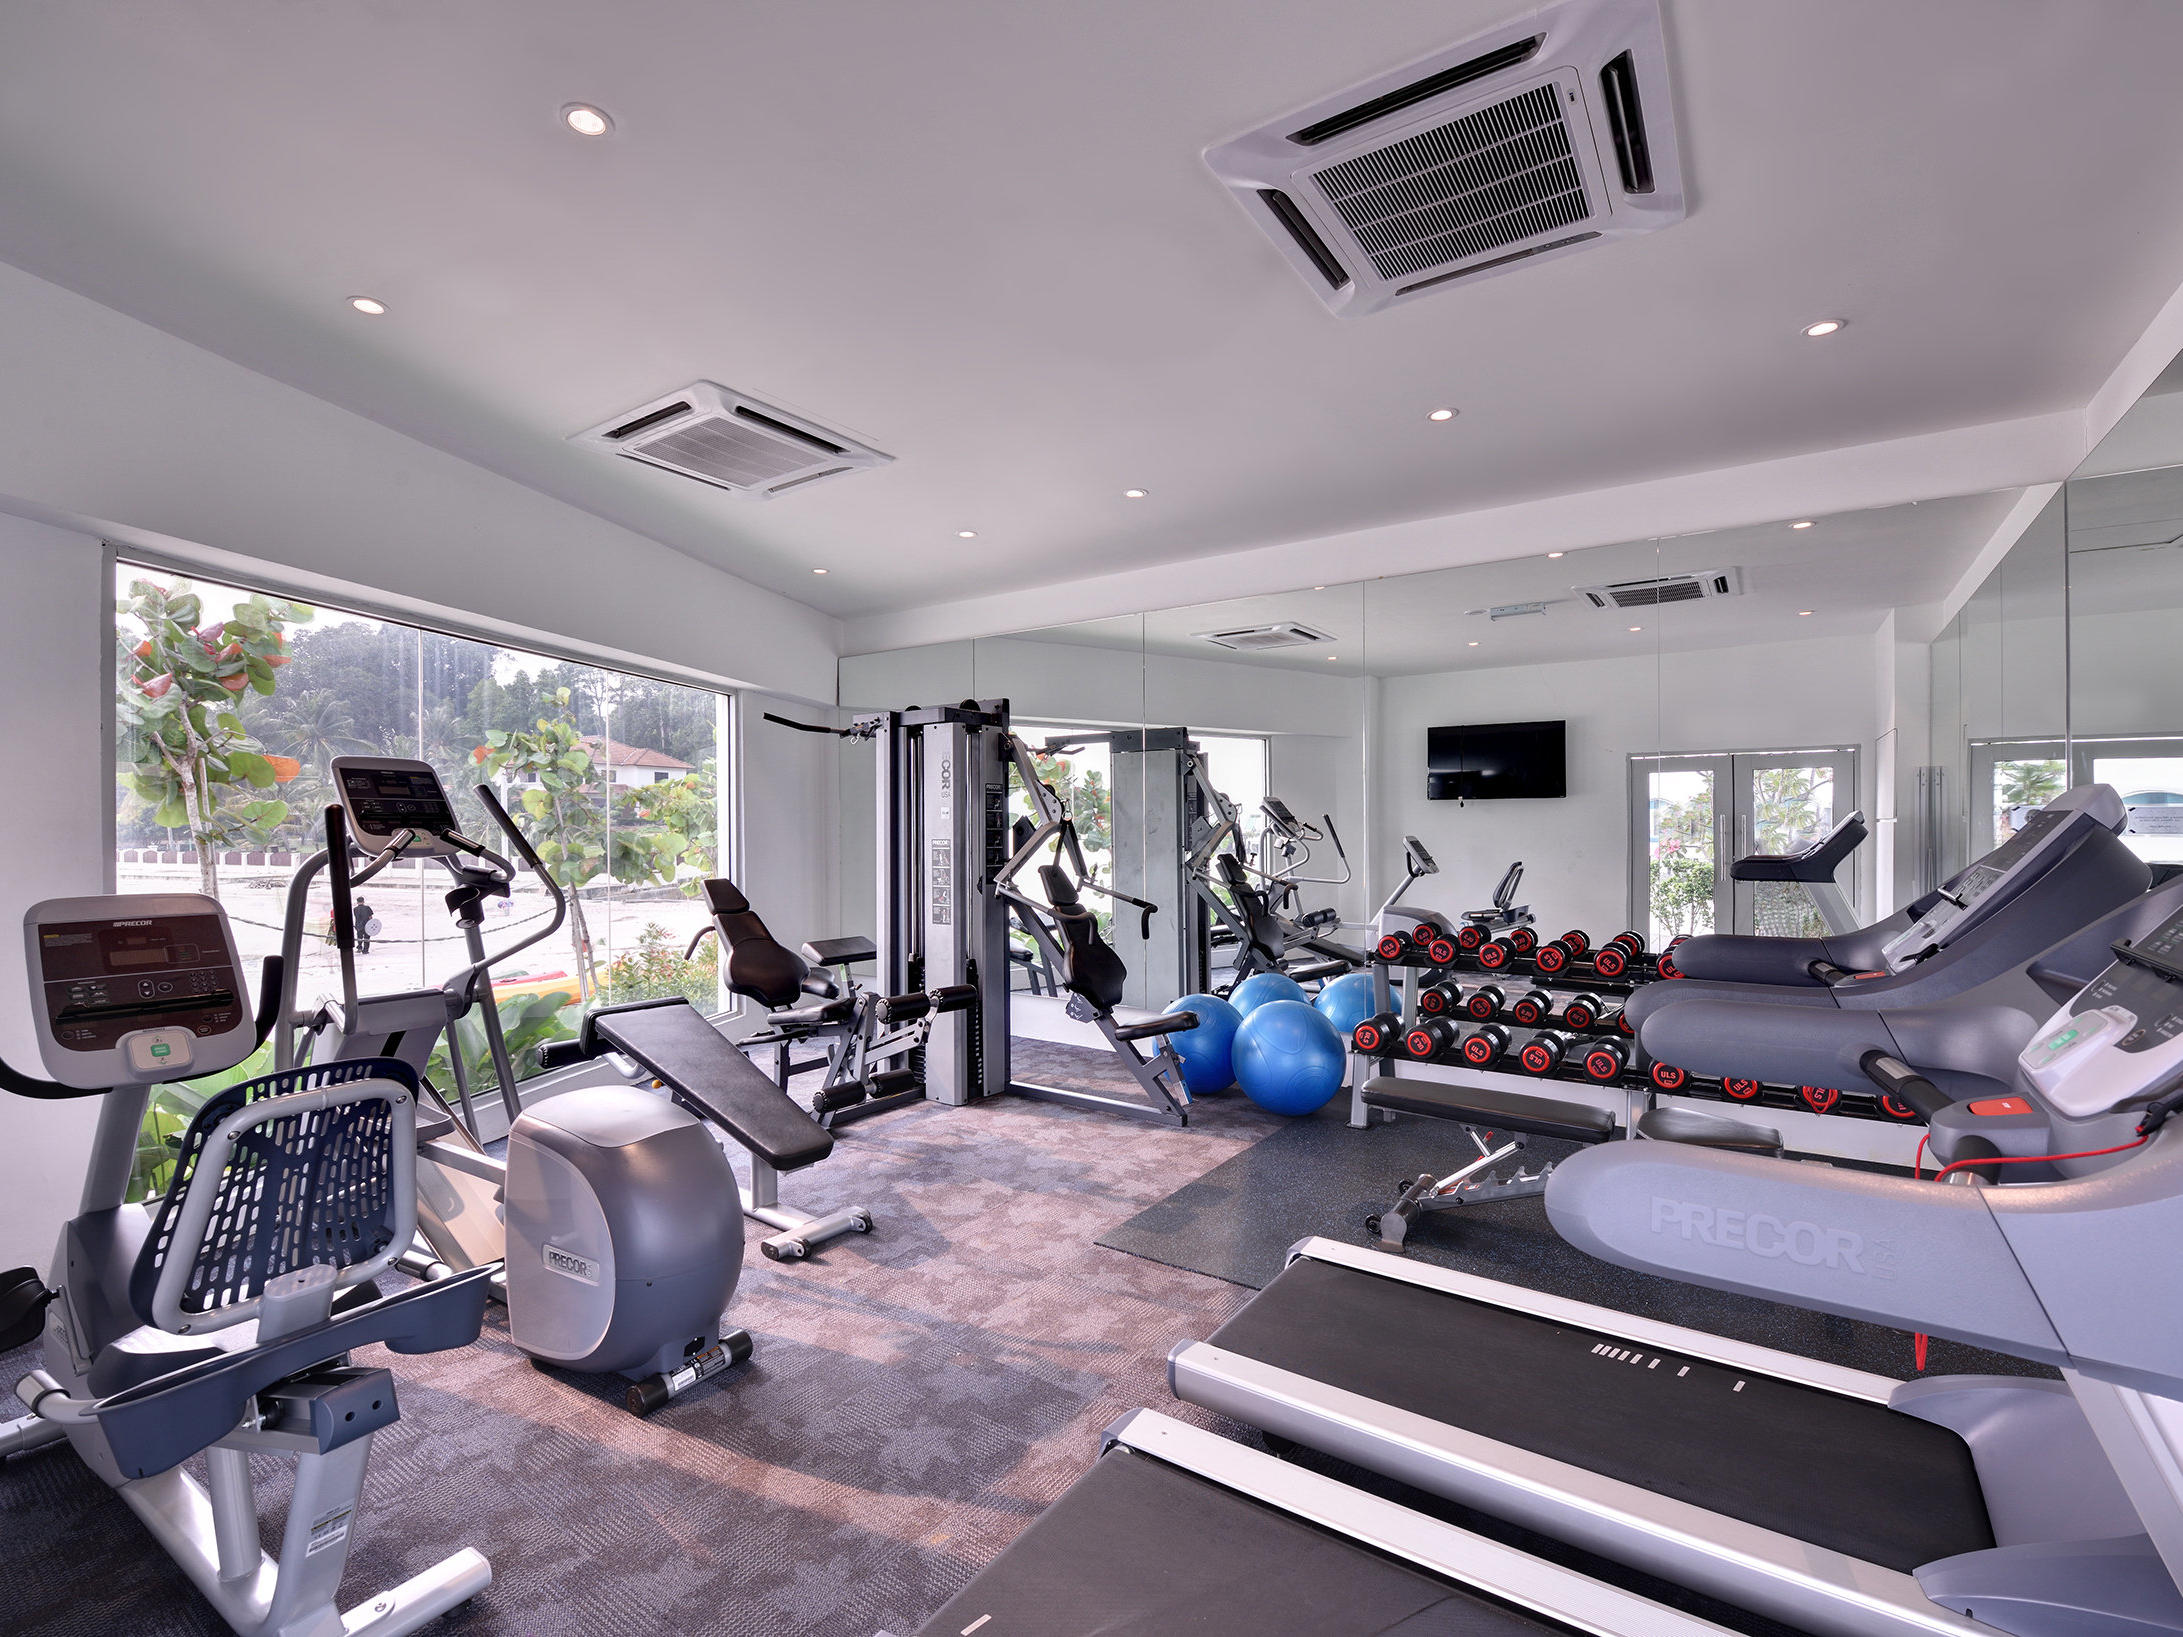 Gravity gym designed by hirsch bedner associates hba lighting